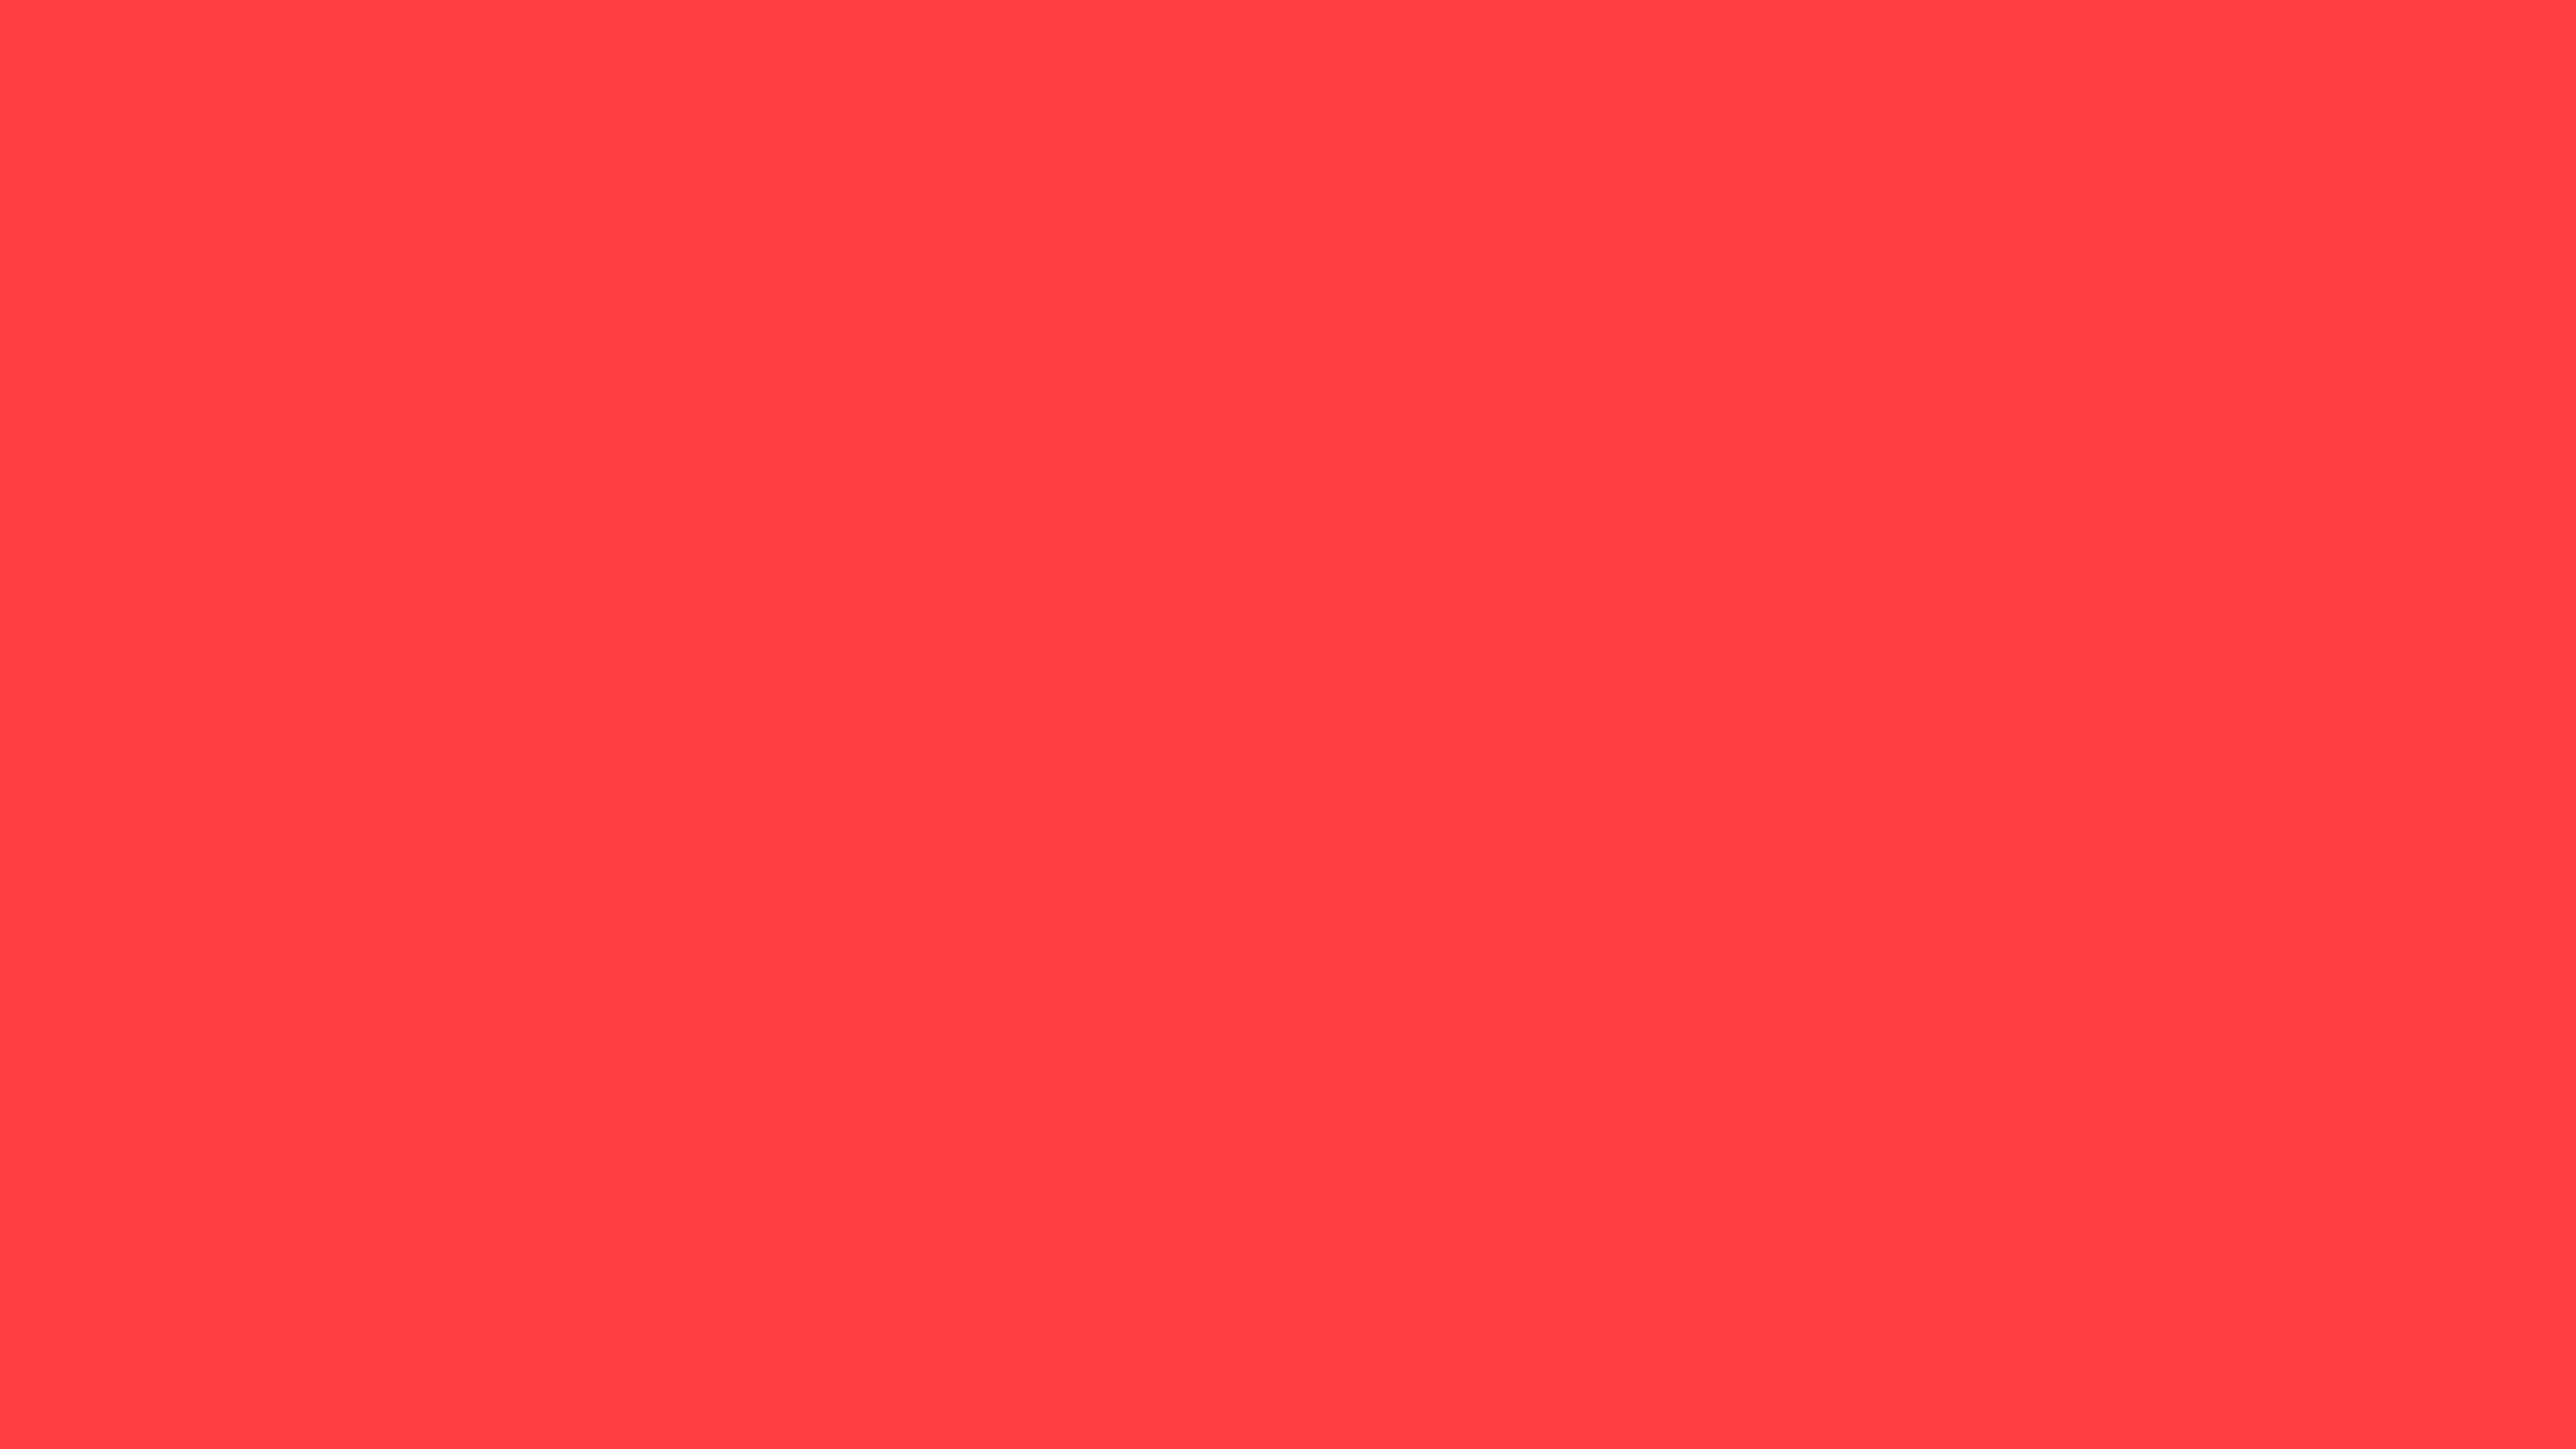 3840x2160 Coral Red Solid Color Background